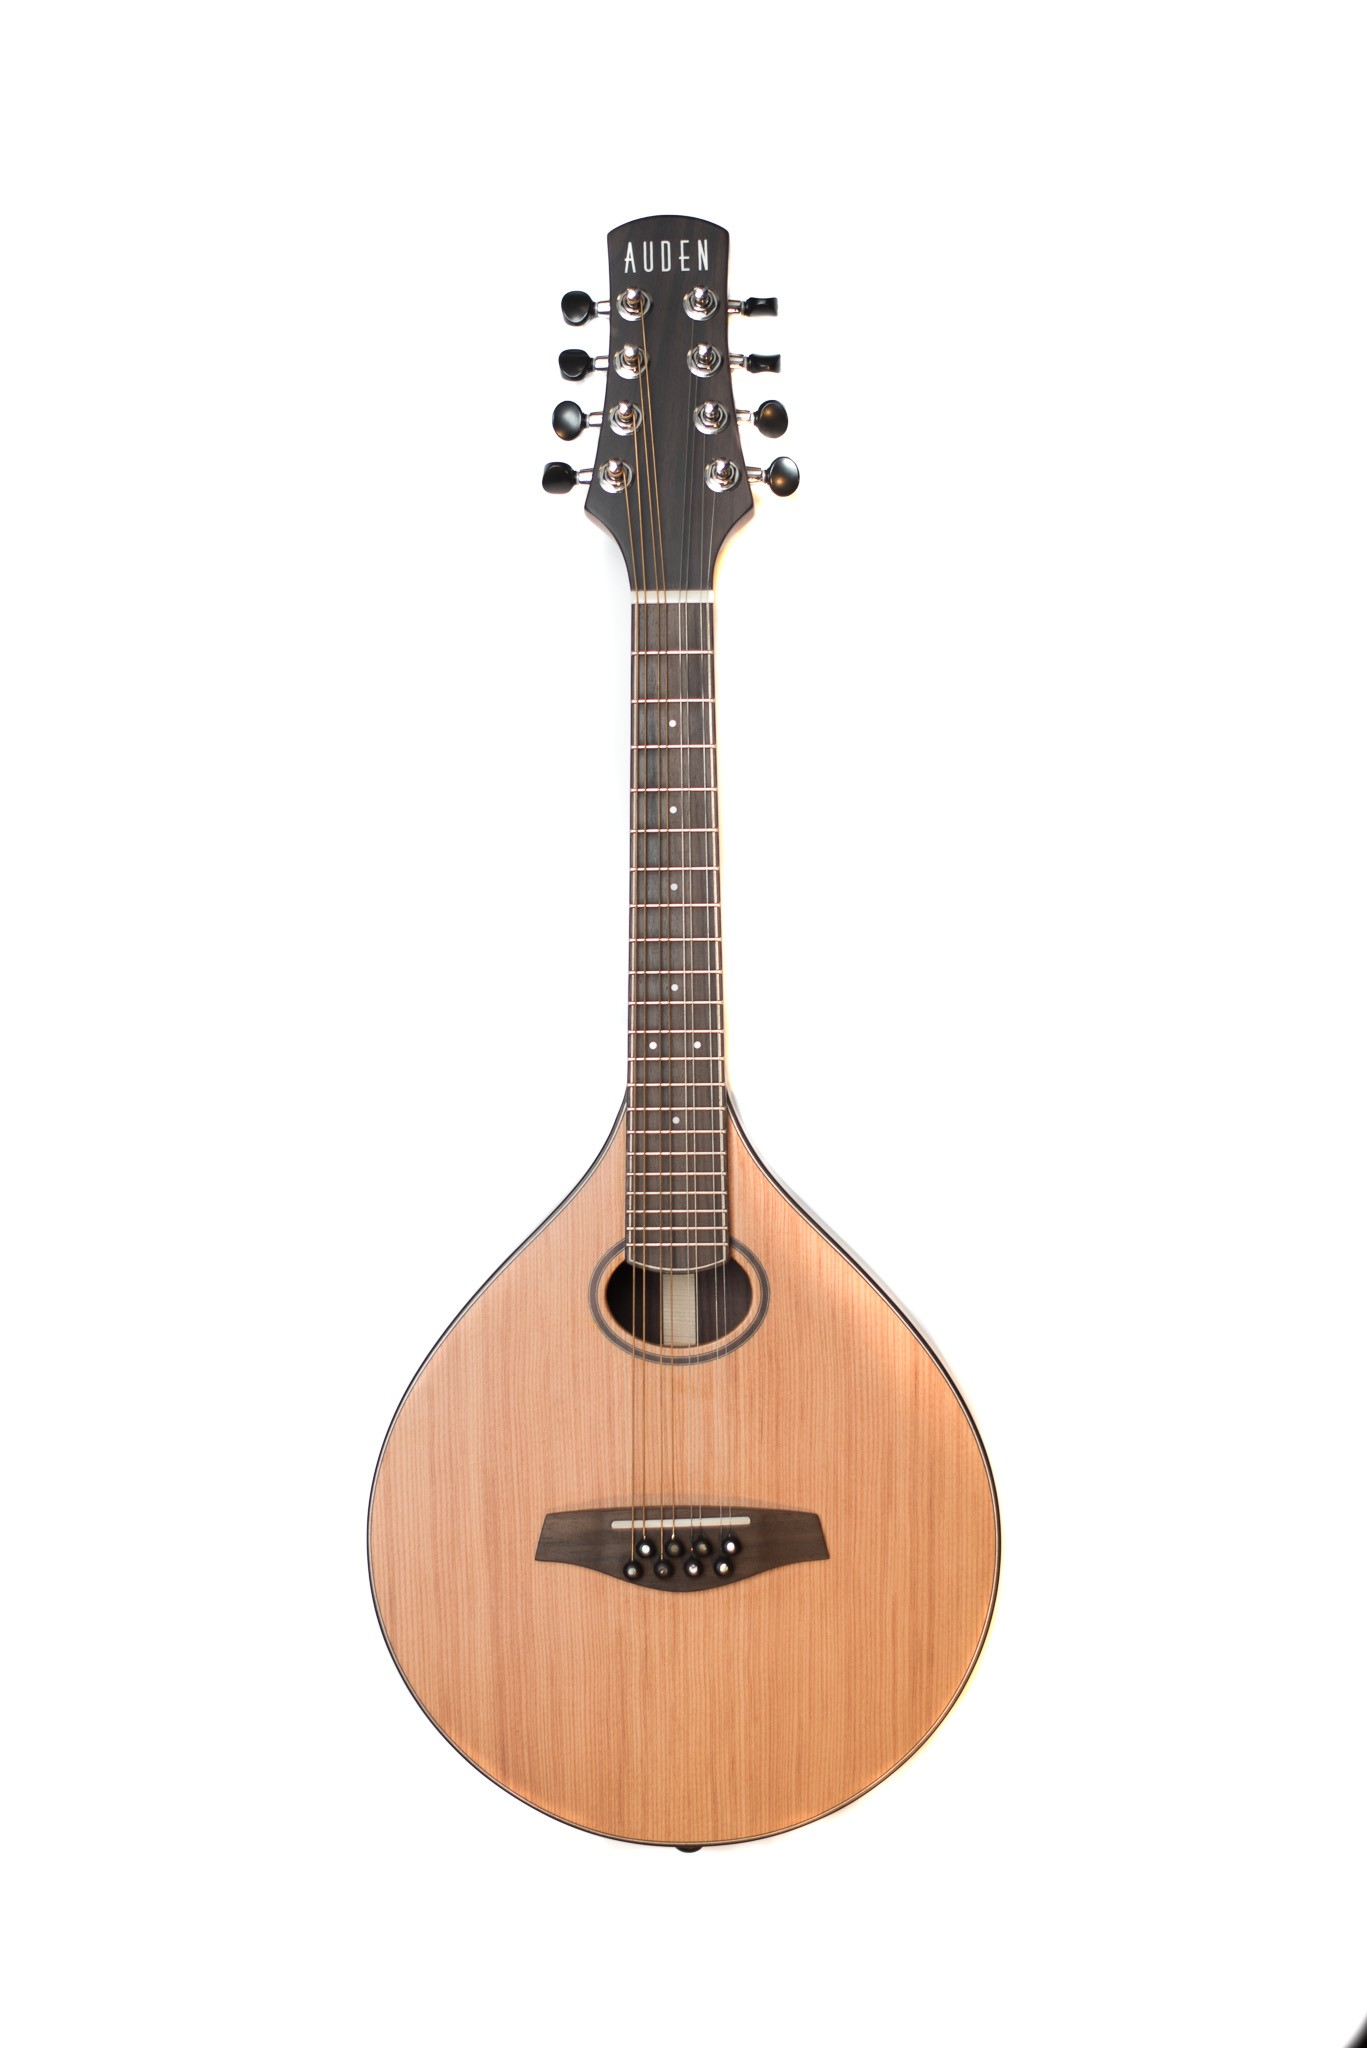 Auden Celtic Mandolin 3R - maple front